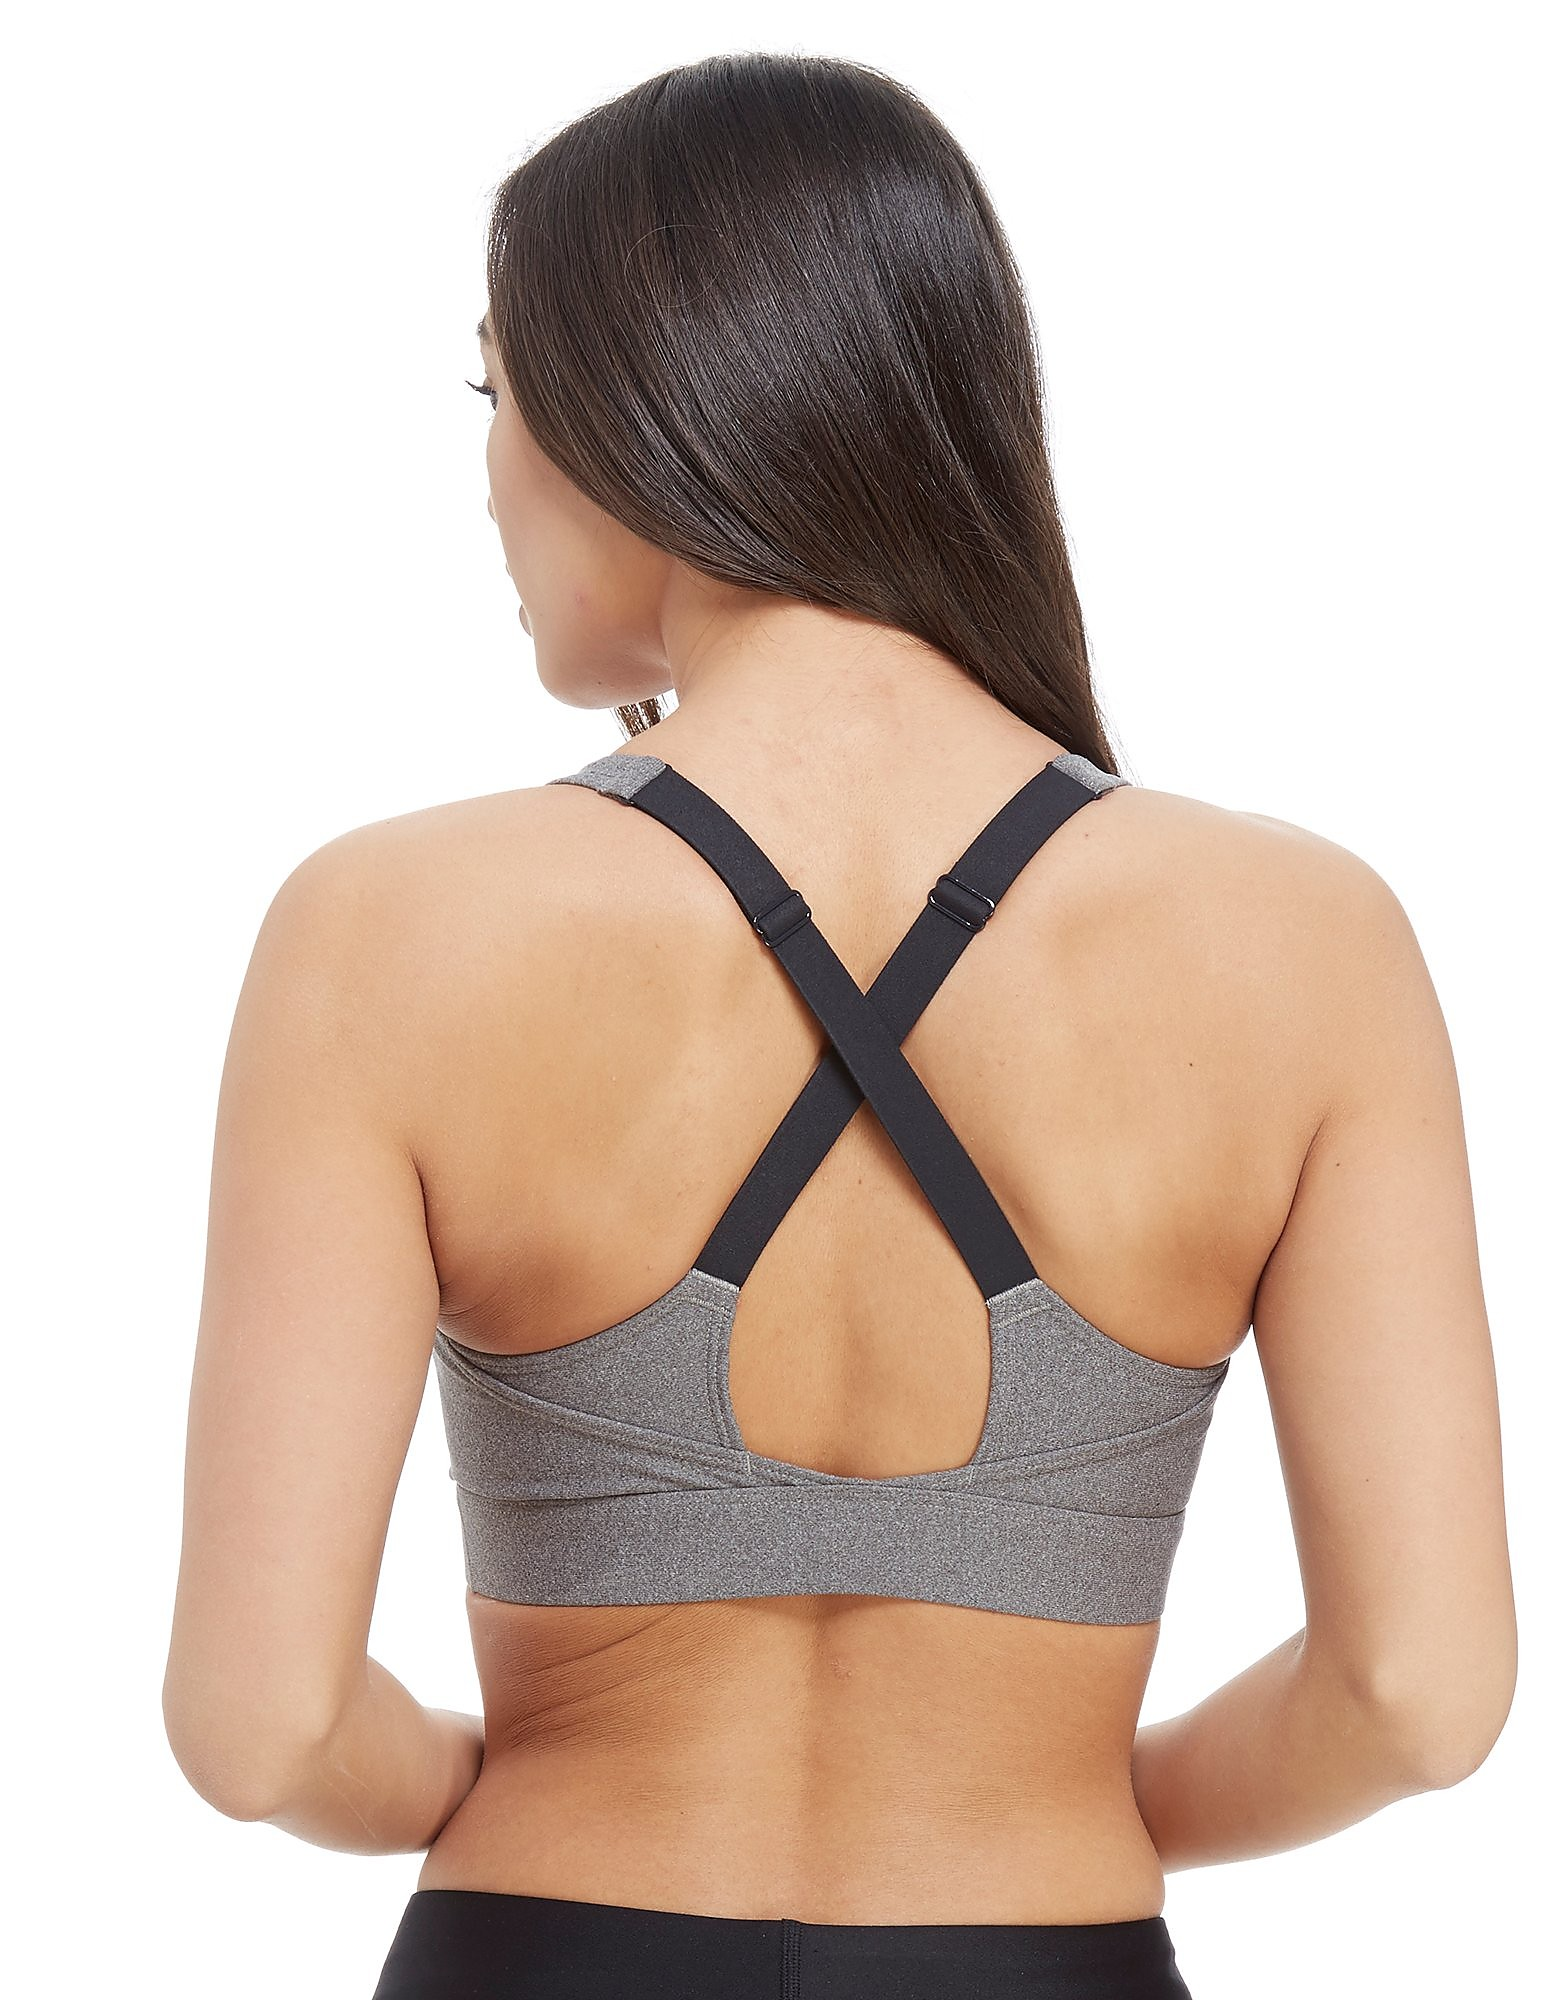 Under Armour Soutien-gorge Balance Sports Femme